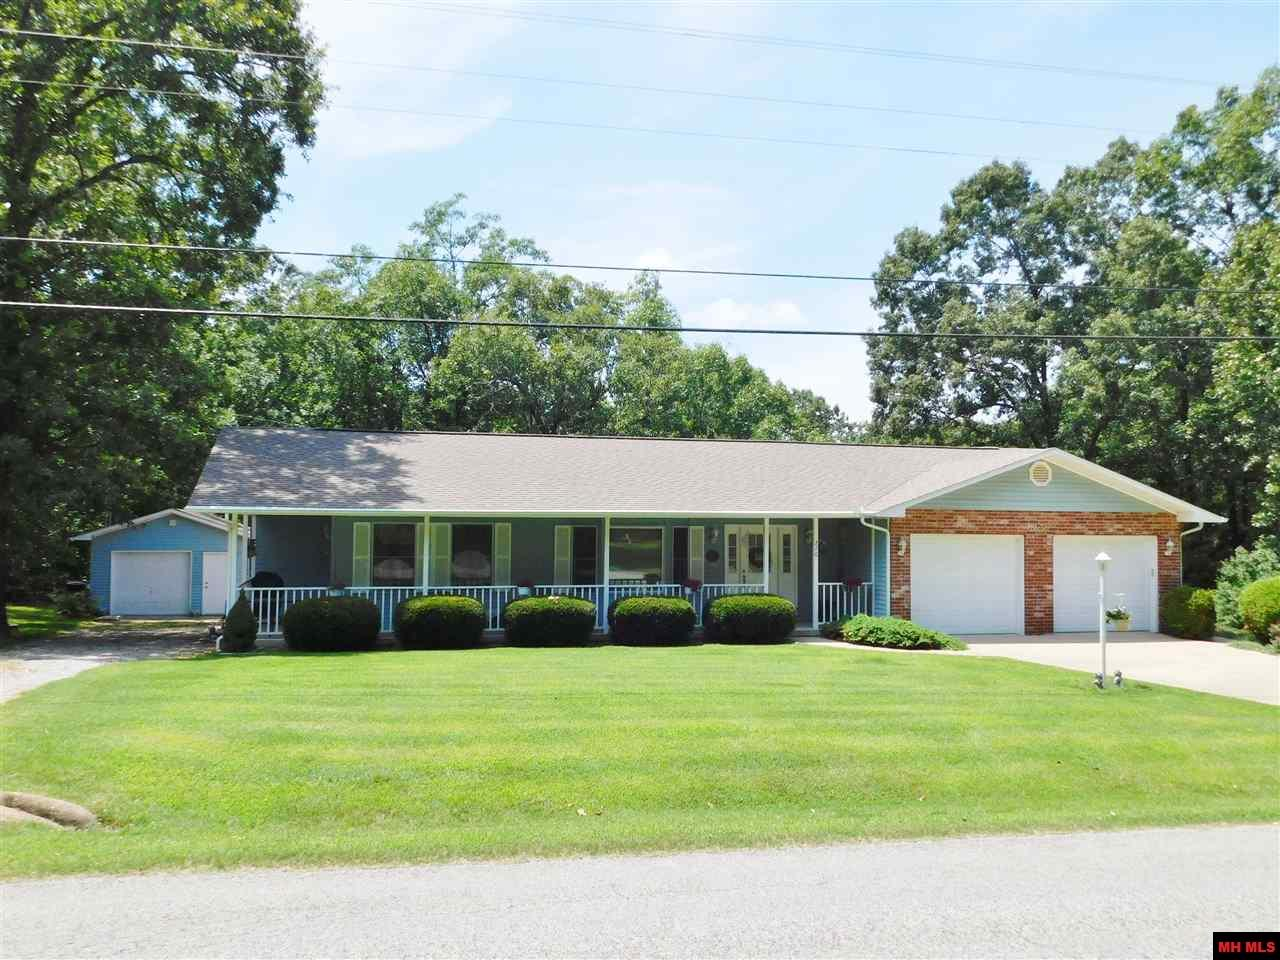 270 EDGEWOOD BAY DRIVE, Lakeview, AR 72642